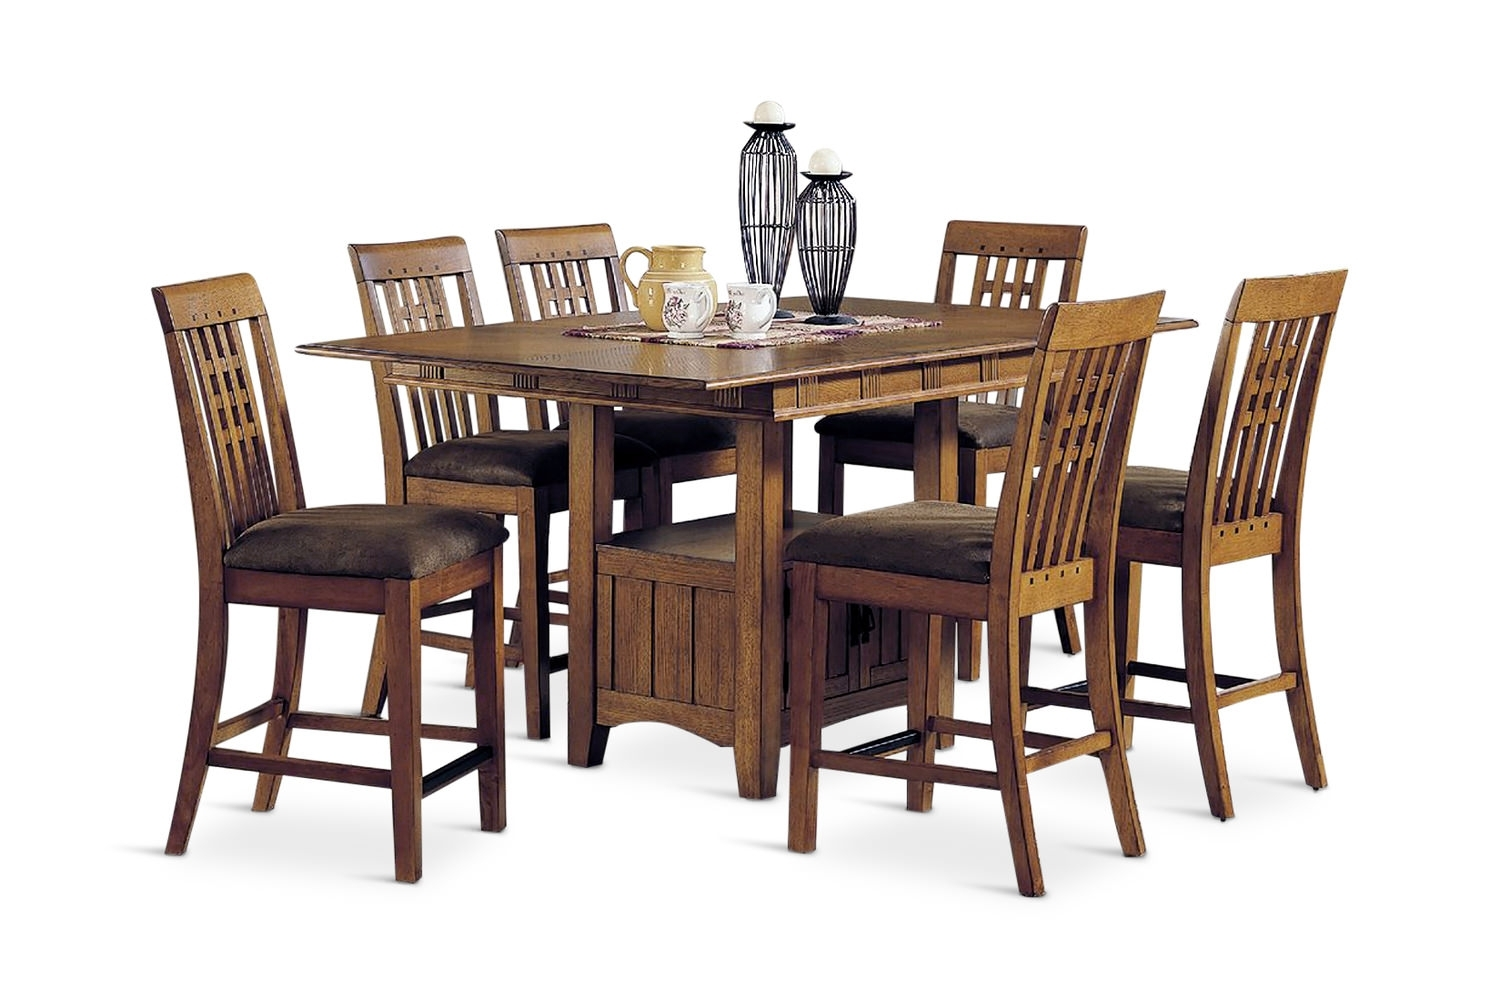 Dining Sets – Kitchen & Dining Room Sets – Hom Furniture For Newest Craftsman 5 Piece Round Dining Sets With Uph Side Chairs (Photo 9 of 20)